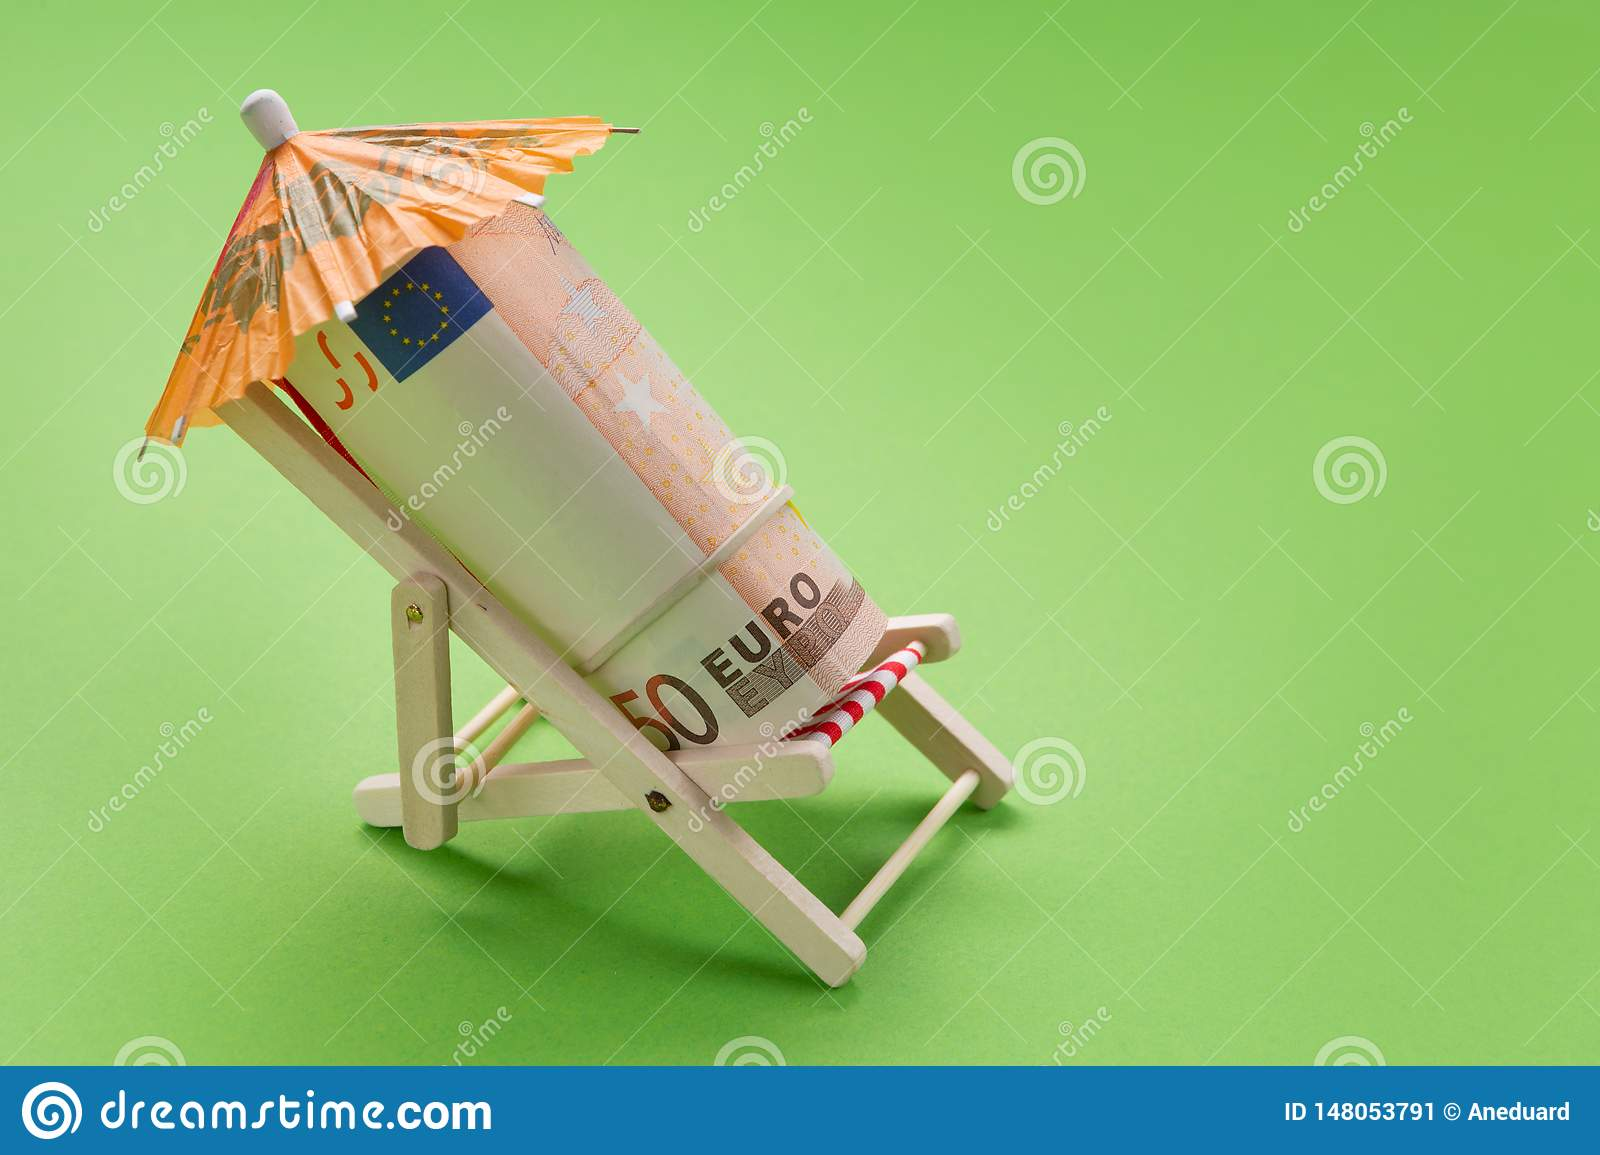 Finance concept, a roll of euro notes lying in a deck chair, under an umbrella, as if resting